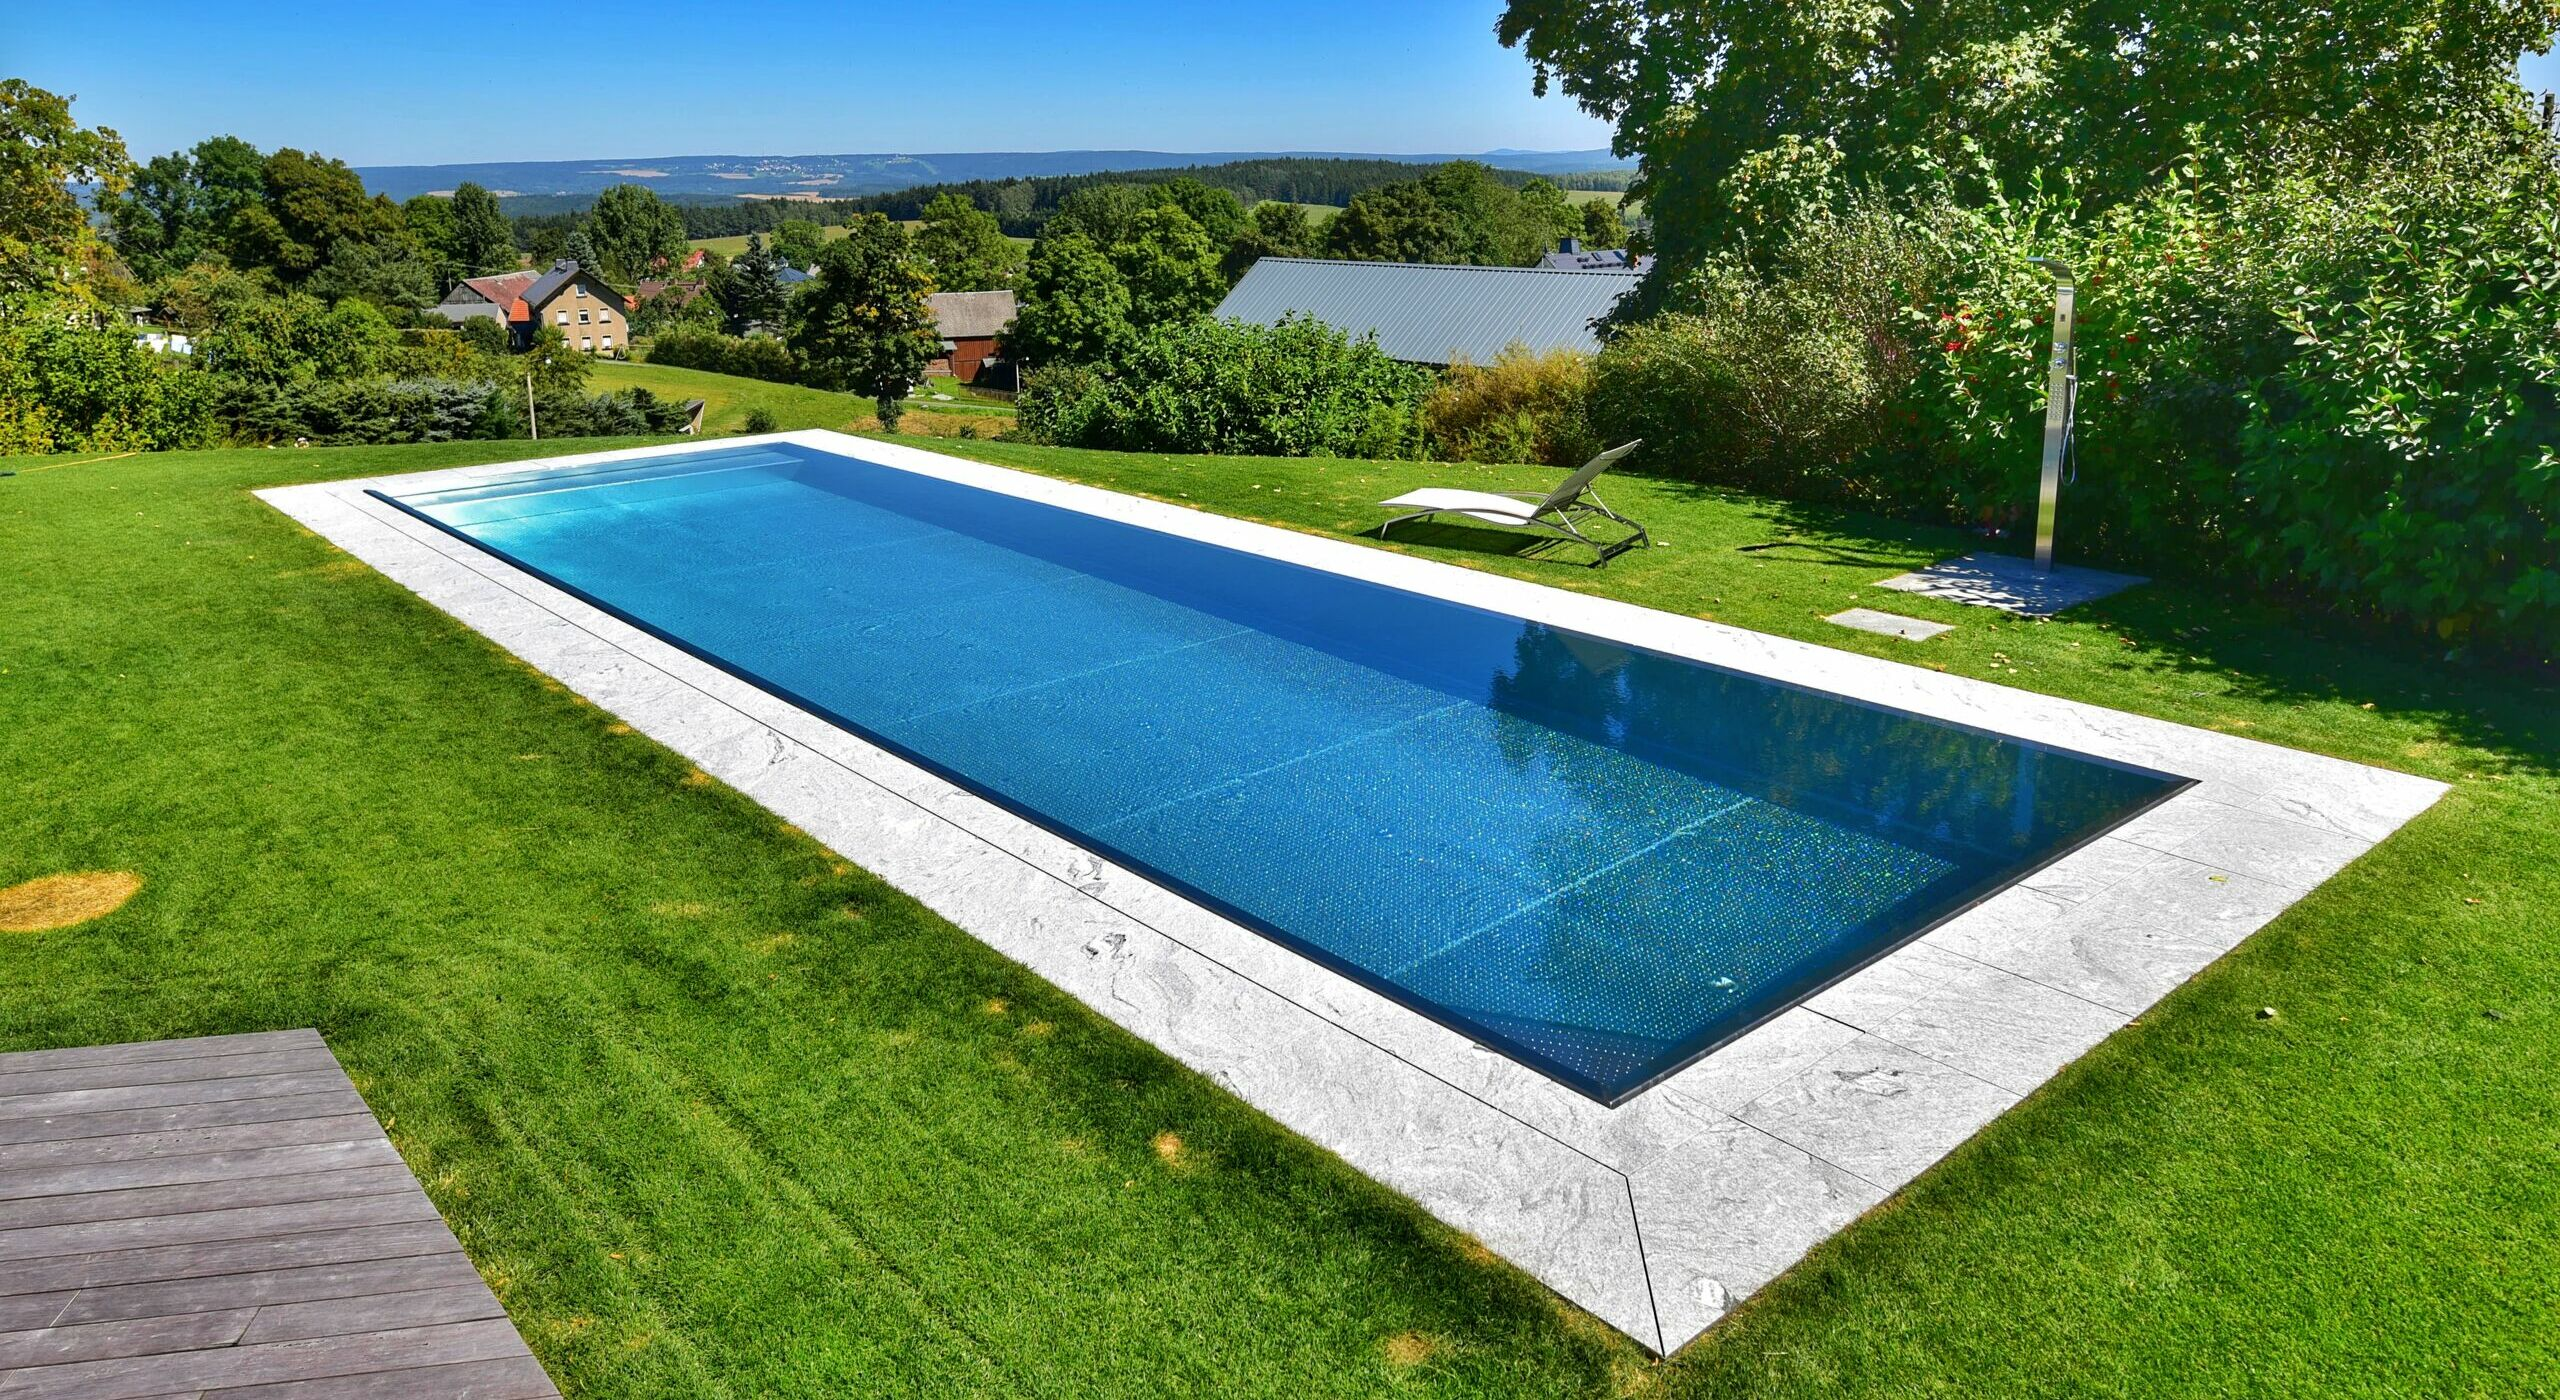 Pool Edelstahl V-lux Pool - Edelstahlpools - Made In Germany